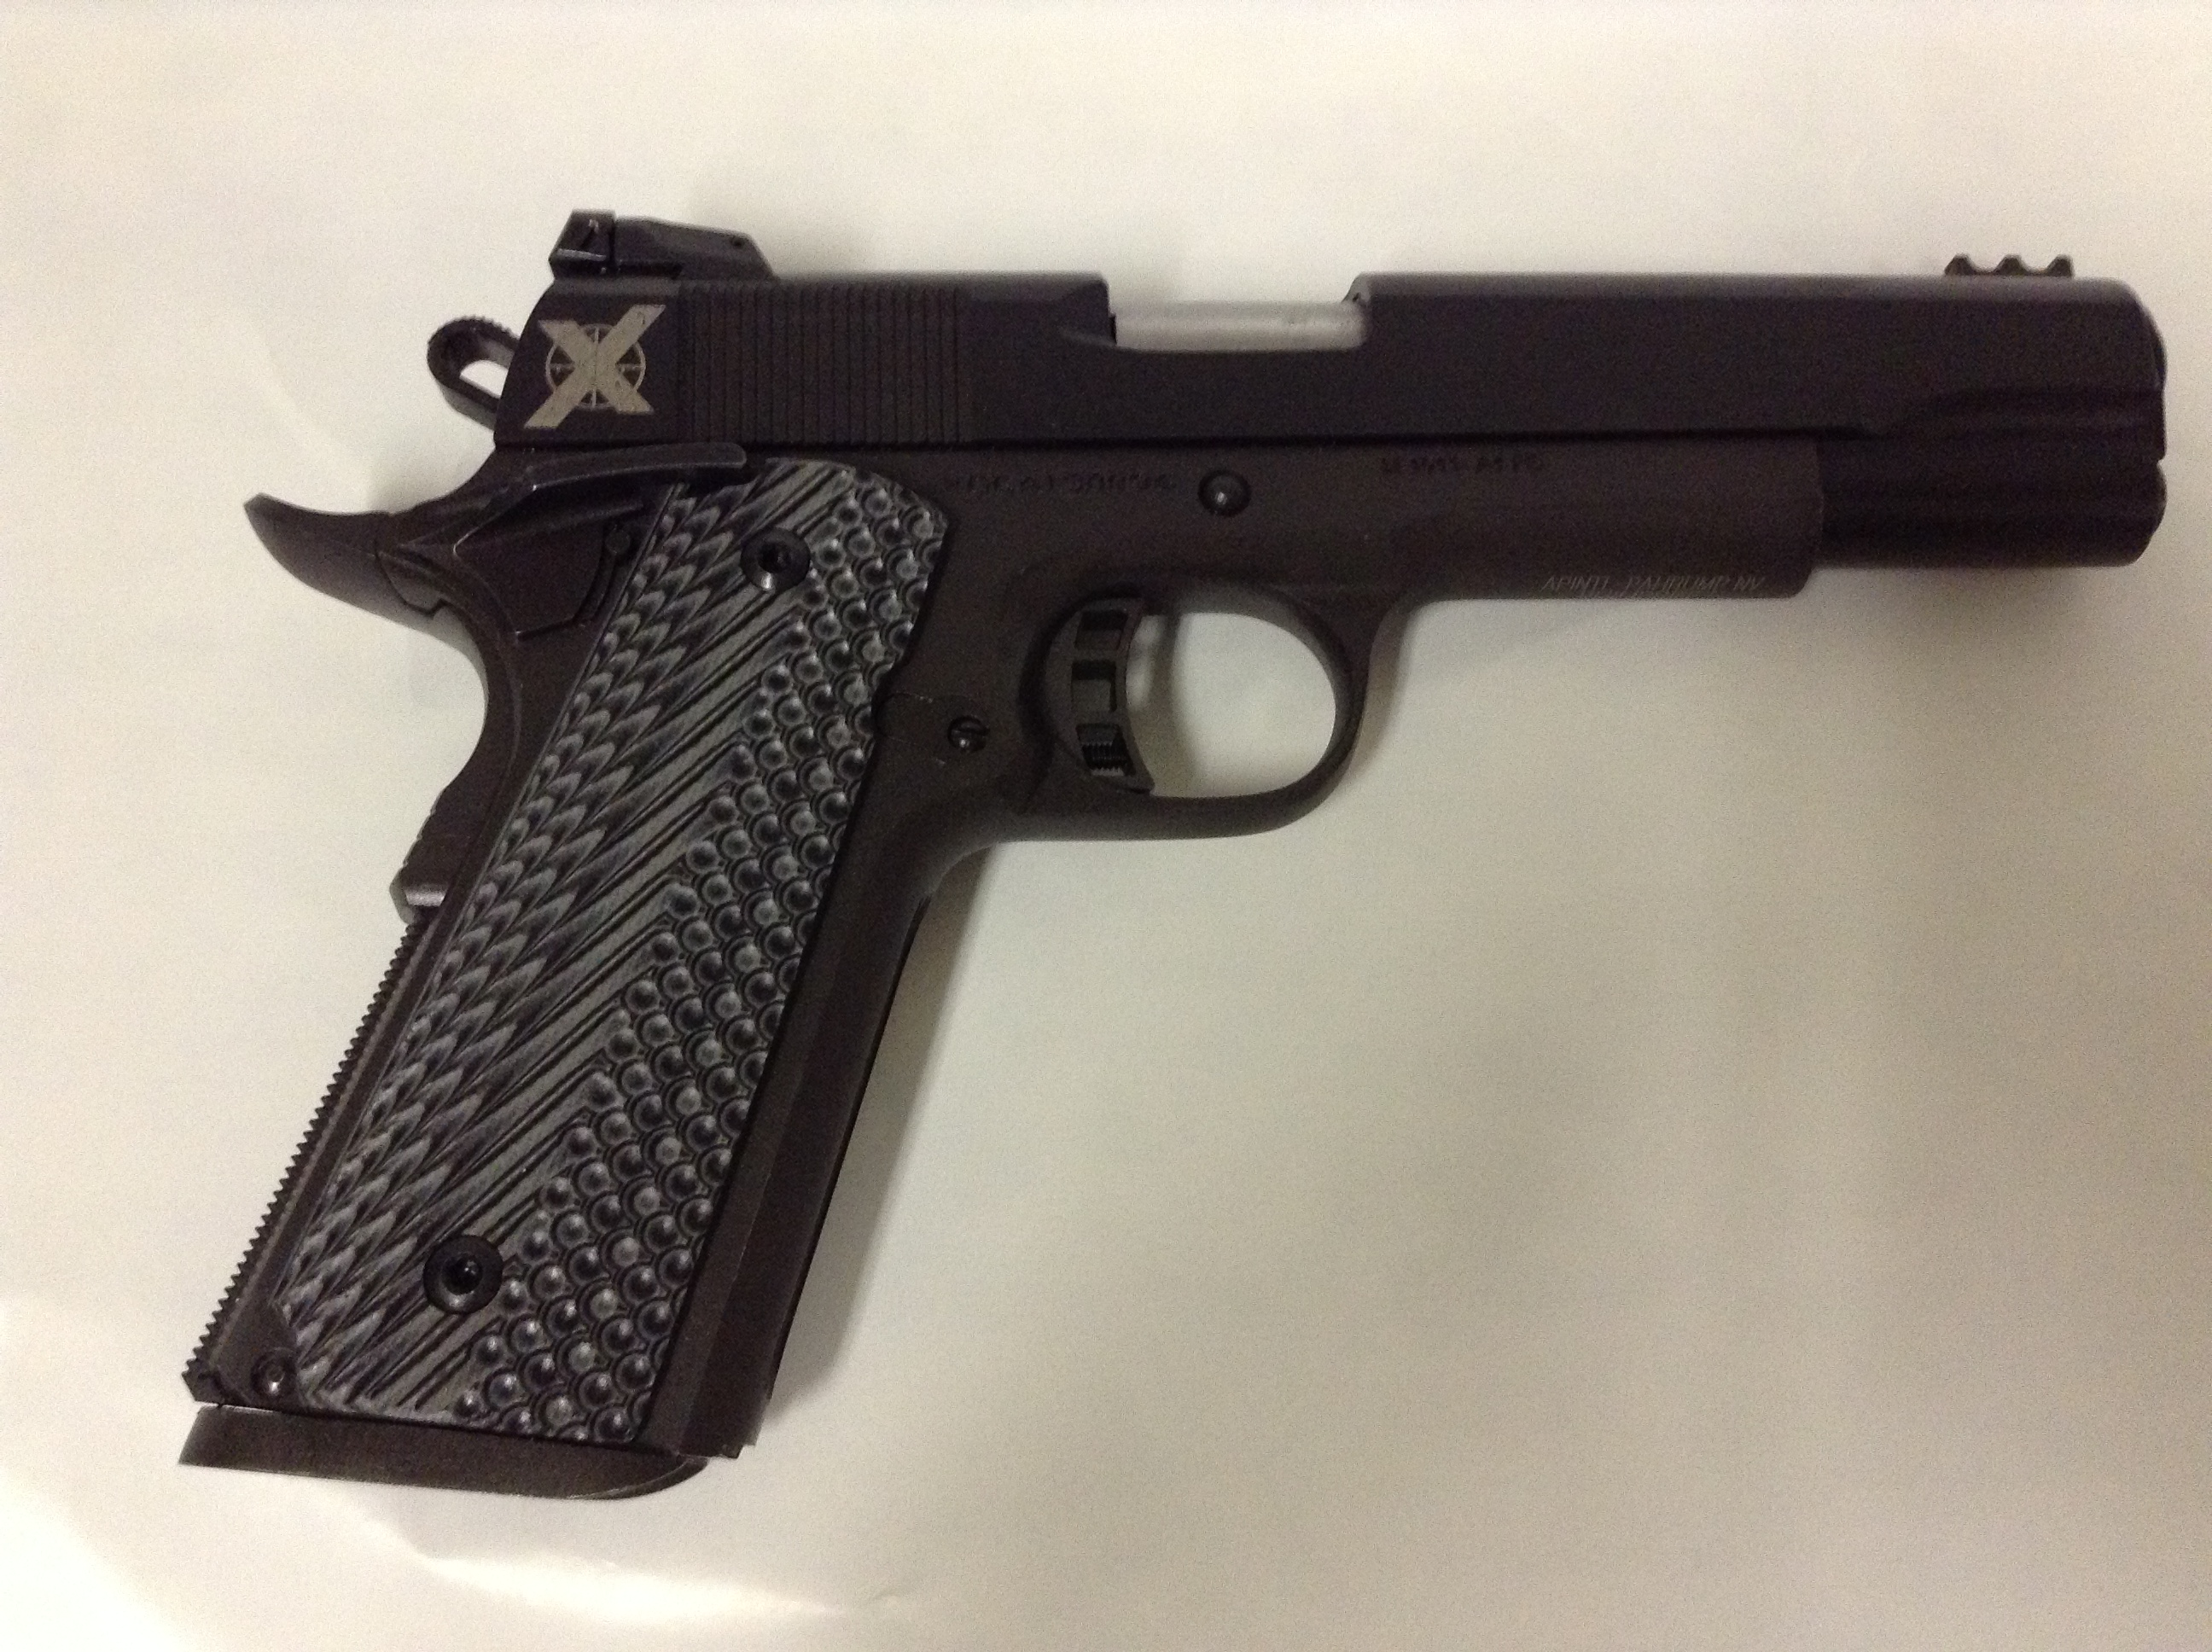 Xtreme Gun 1911 9mm with VZ grips